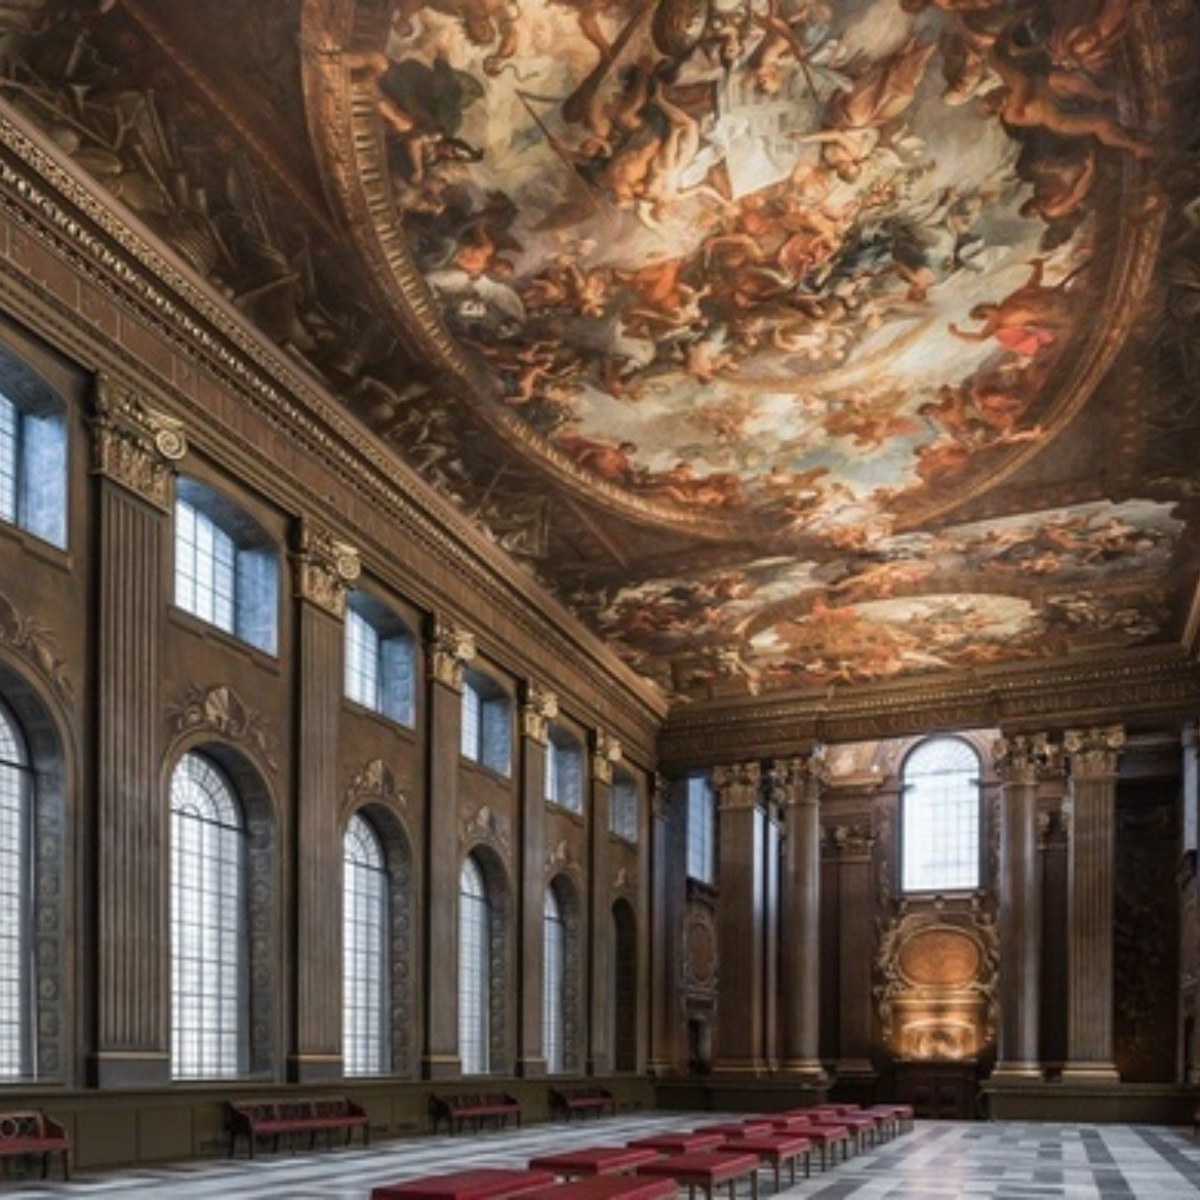 The Painted Hall Images